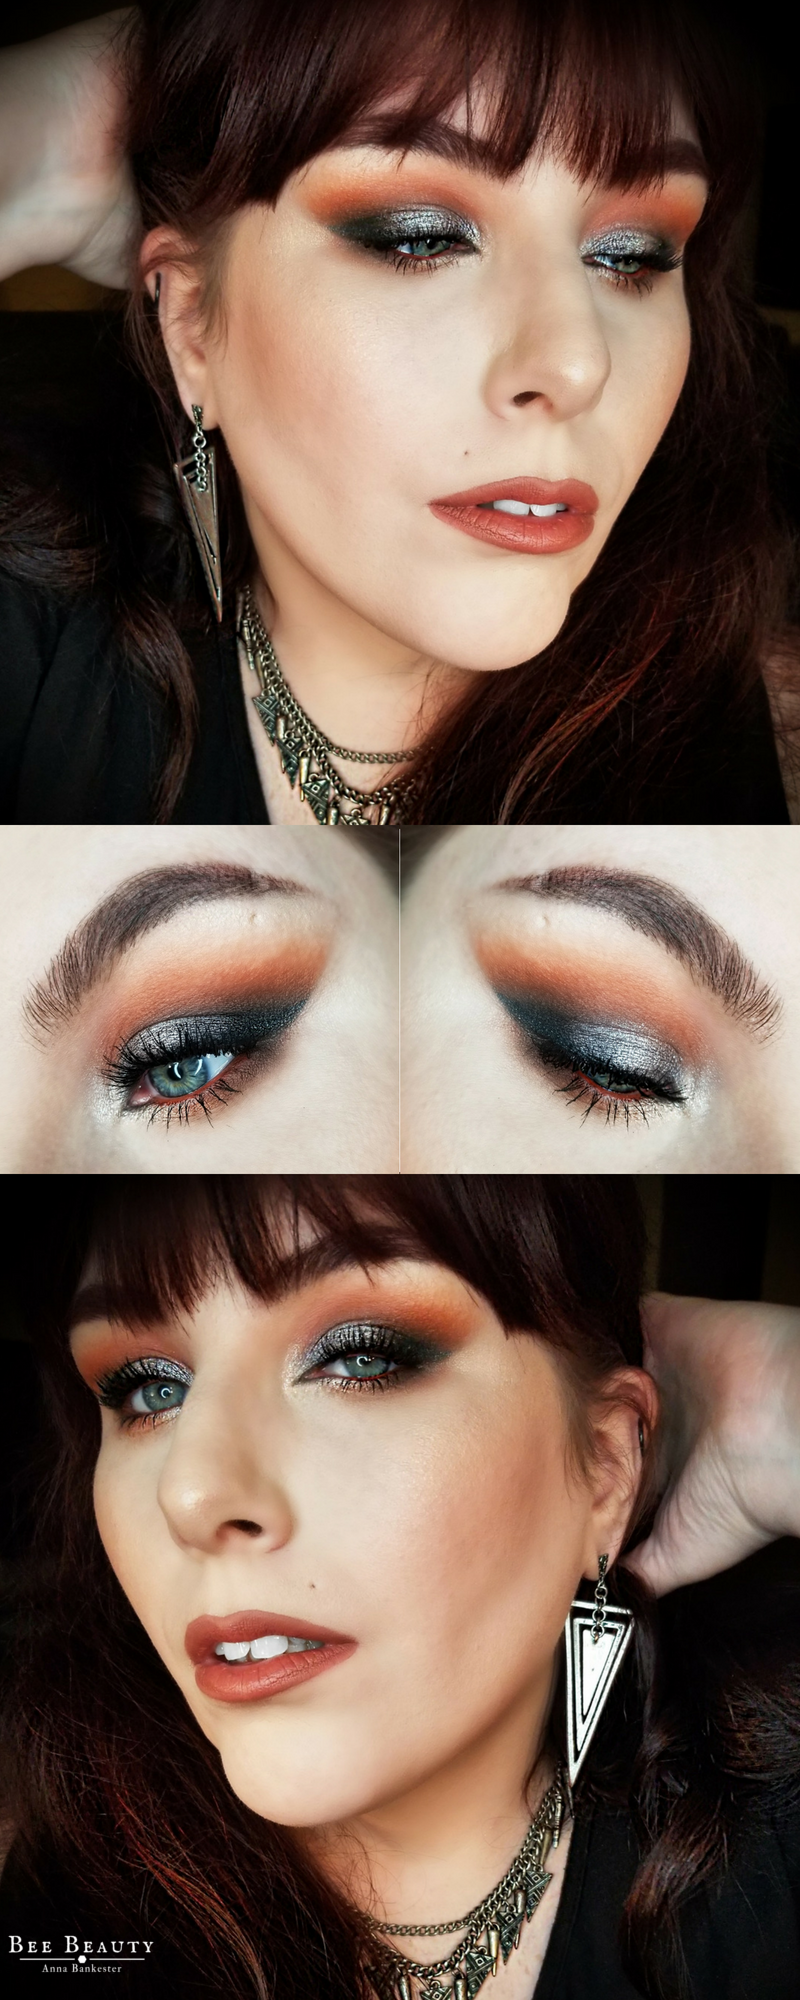 Get the Look | Woken Furies - Fall Makeup Tutorial.